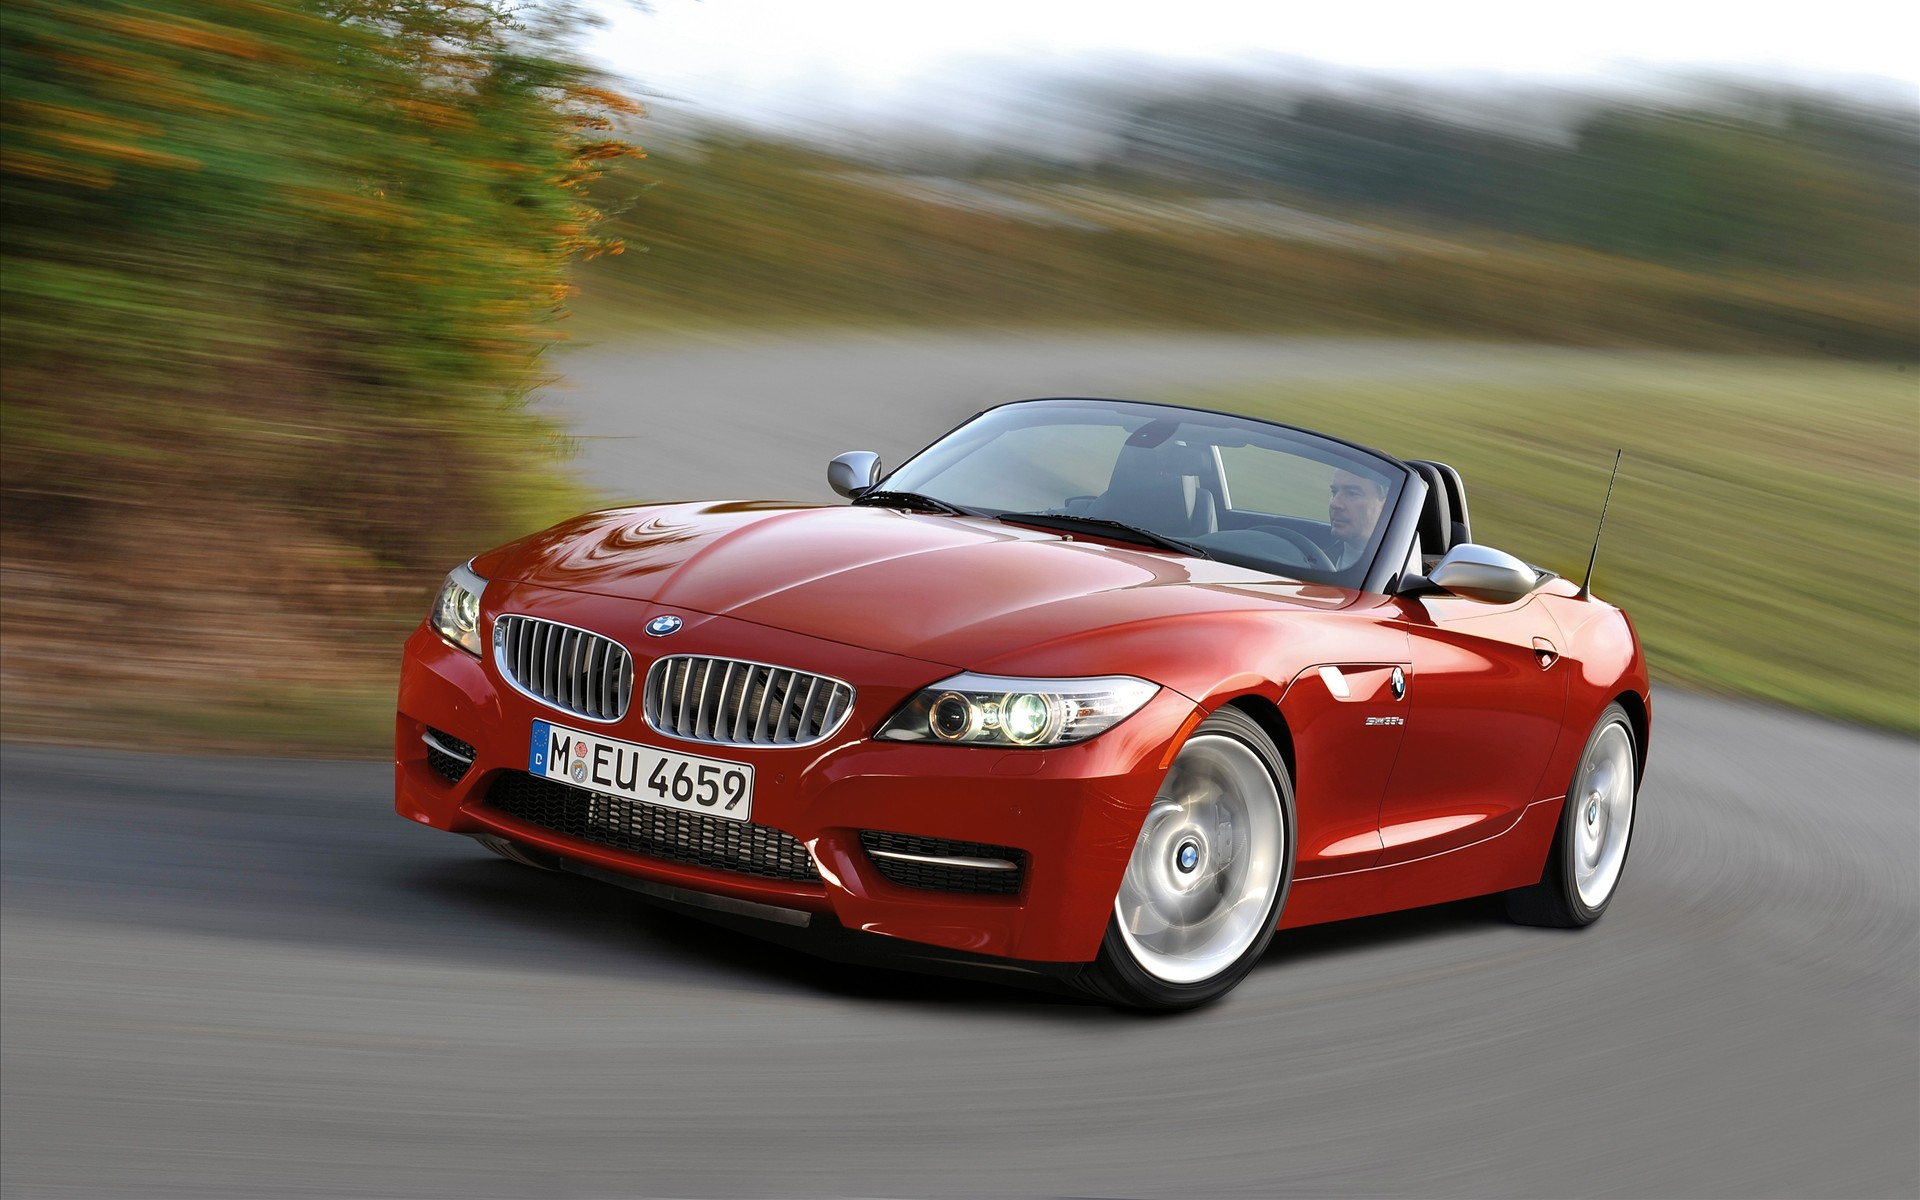 New BMW Z4 2011 Car 1632.52 Kb